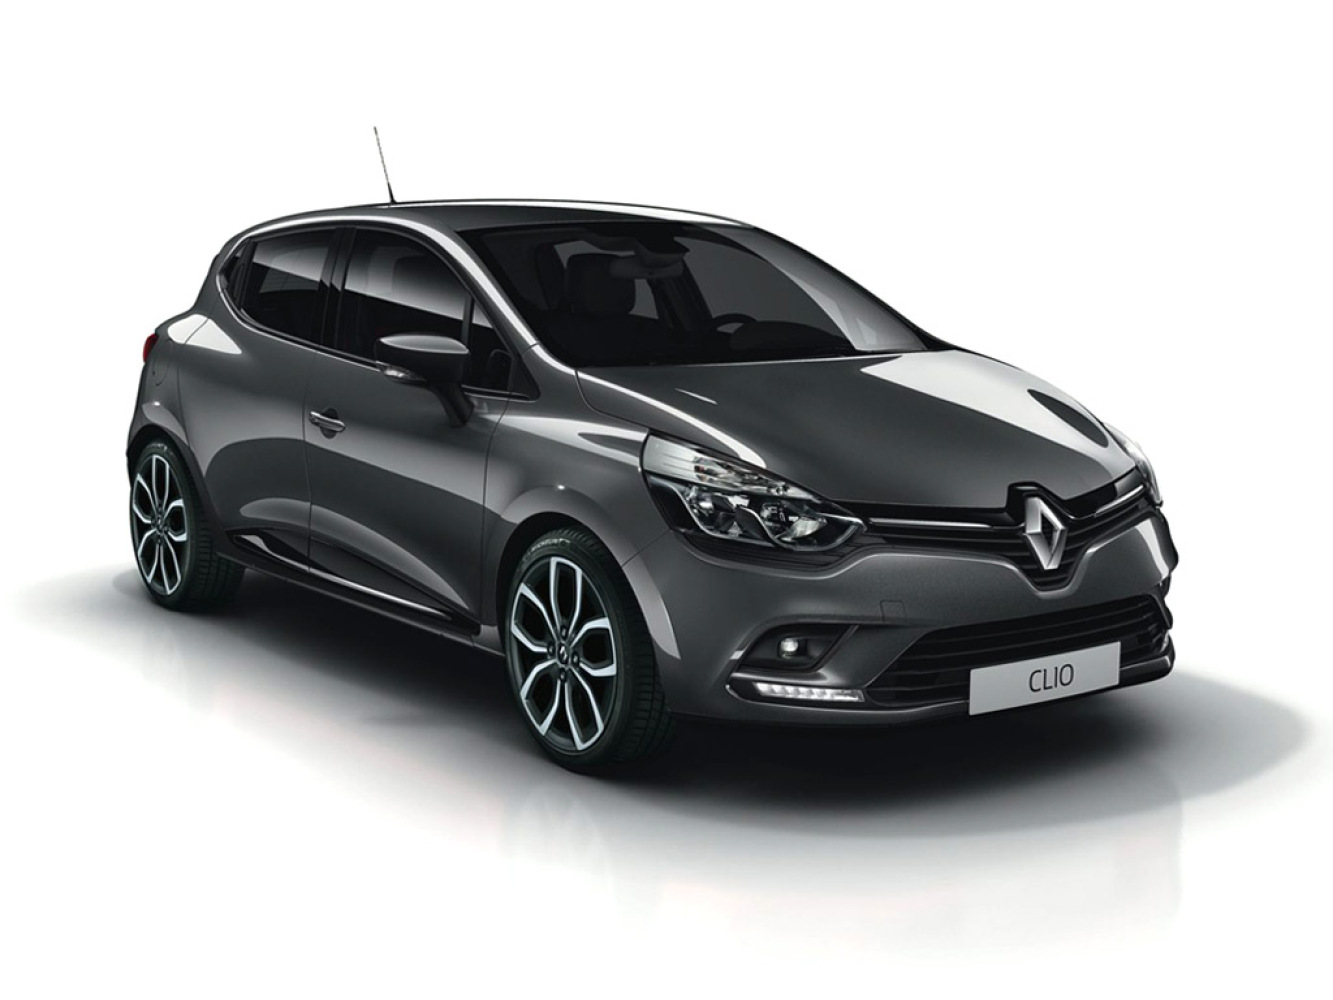 new renault clio 0 9 tce 75 play 5dr petrol hatchback for sale bristol street. Black Bedroom Furniture Sets. Home Design Ideas